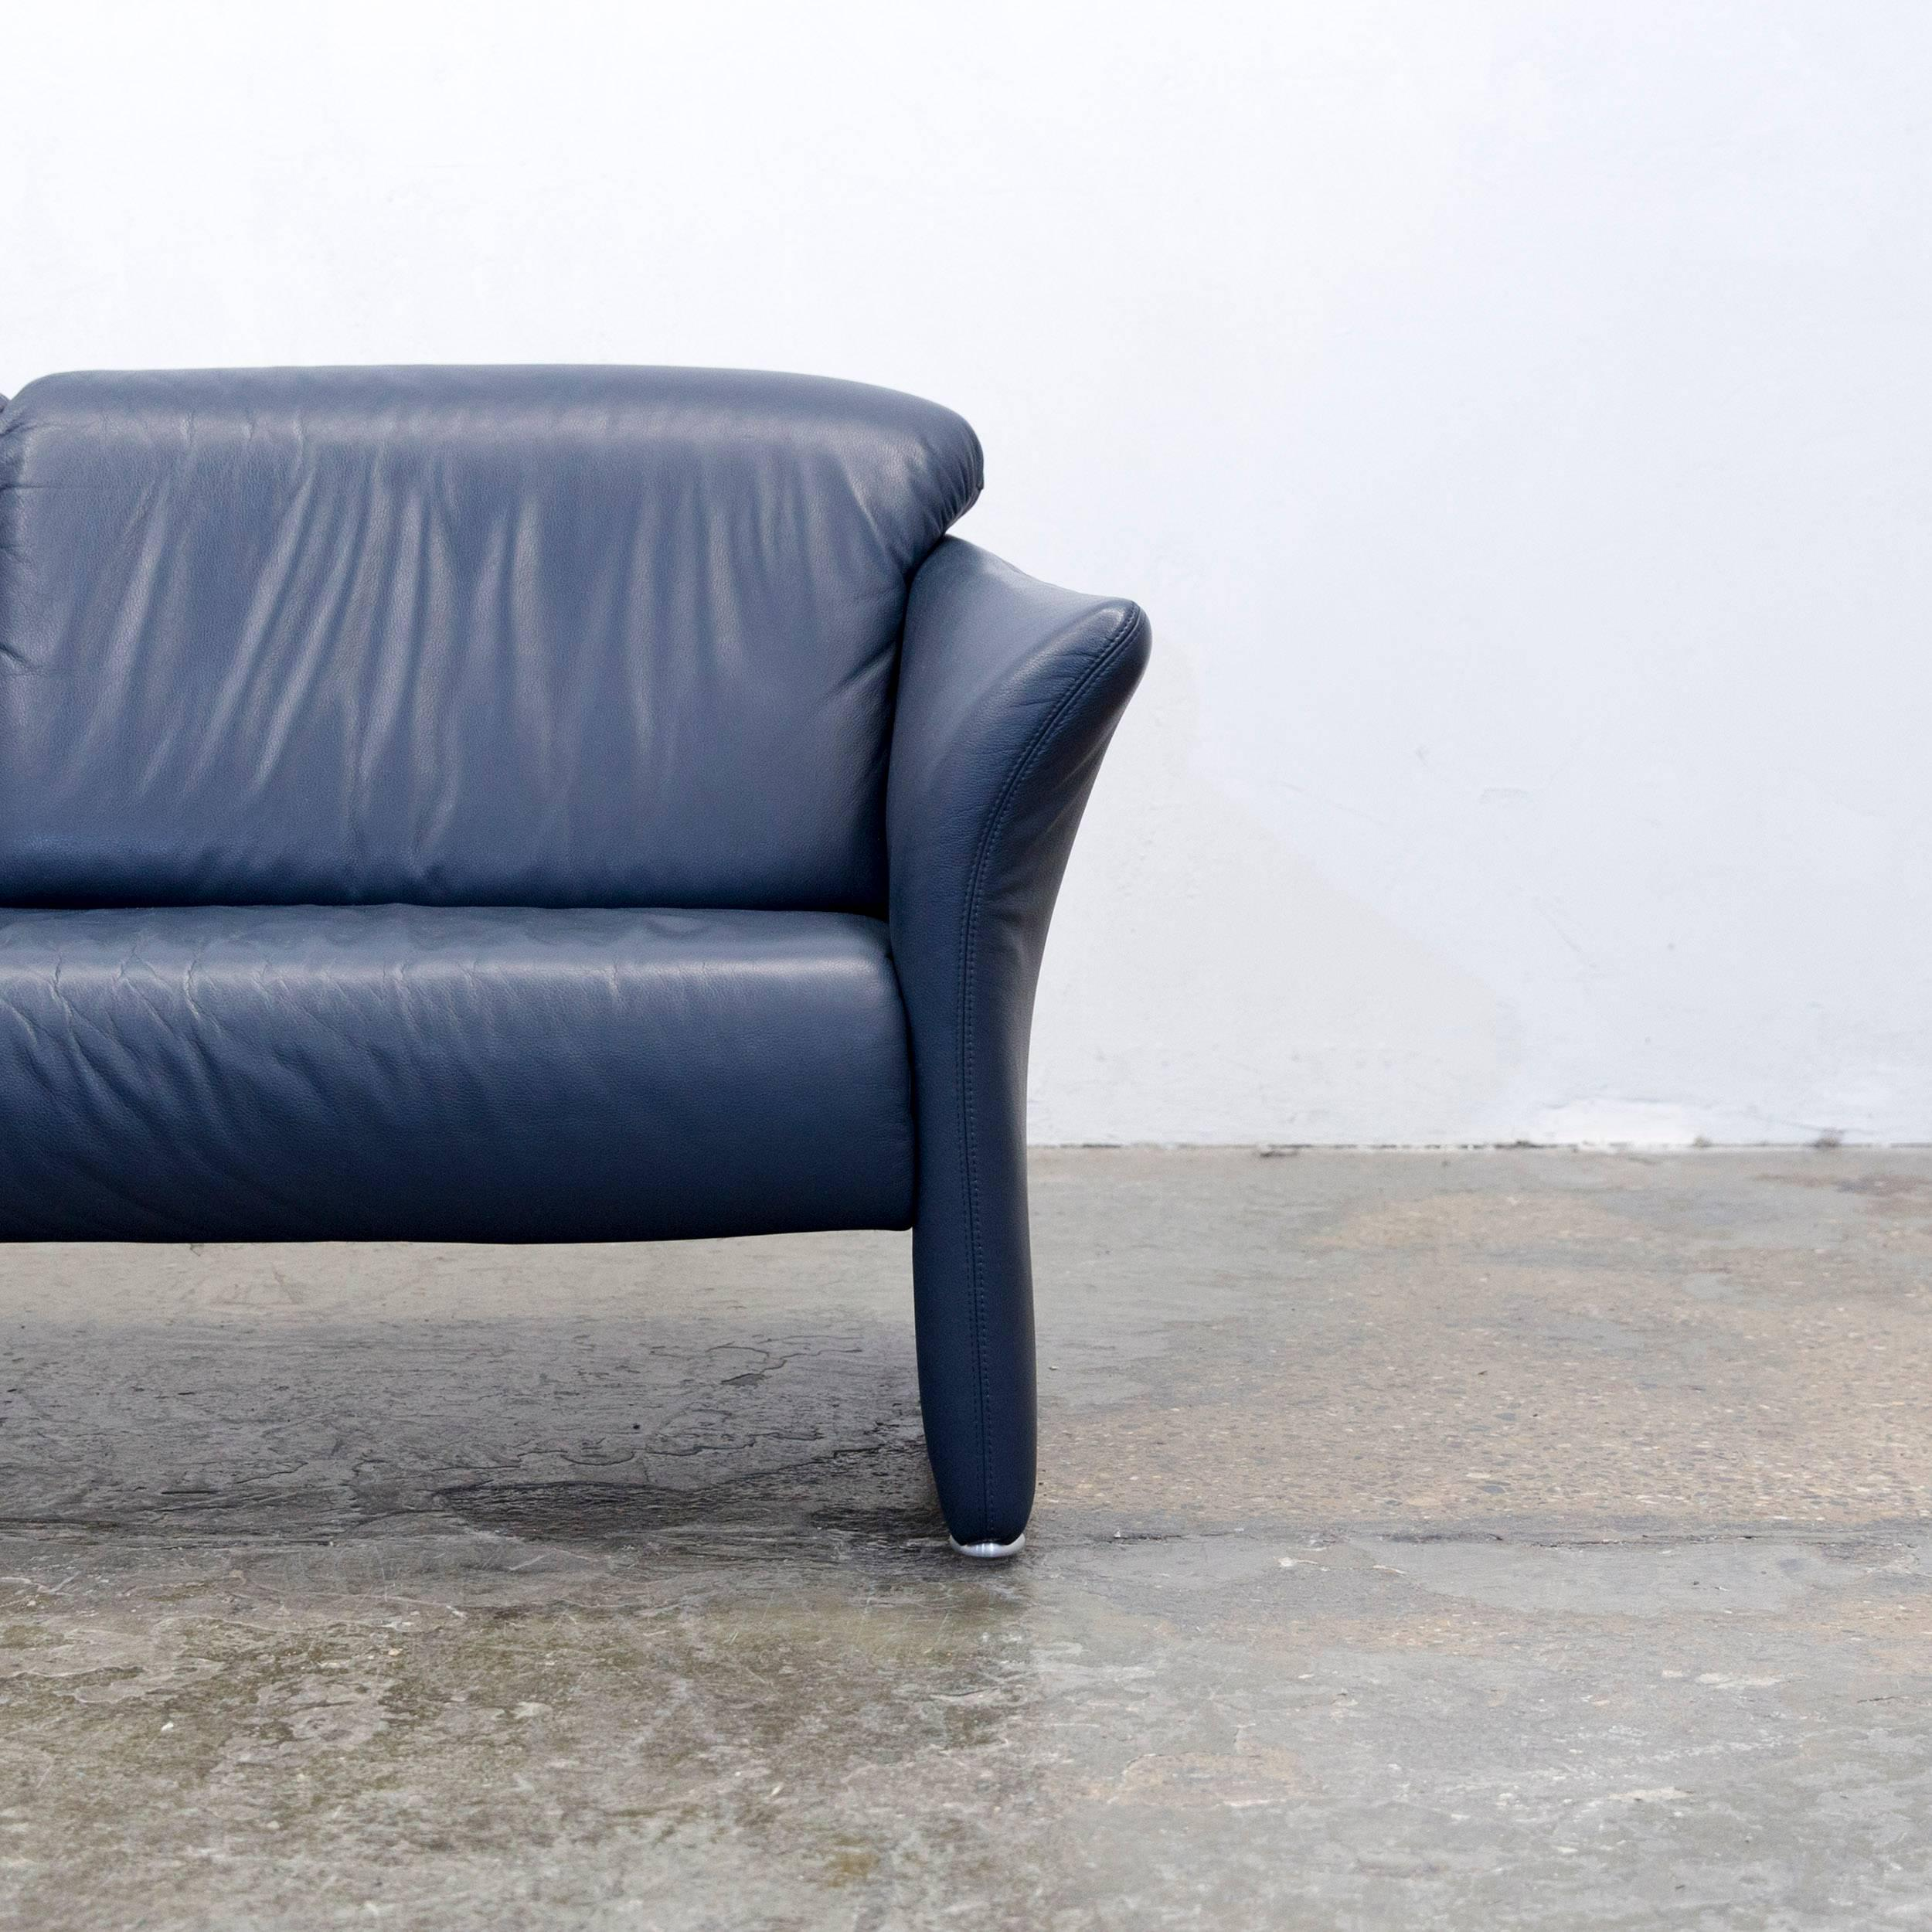 Koinor Designer Sofa Leather Dark Blue Couch Modern Made In Germany In Good  Condition For Sale